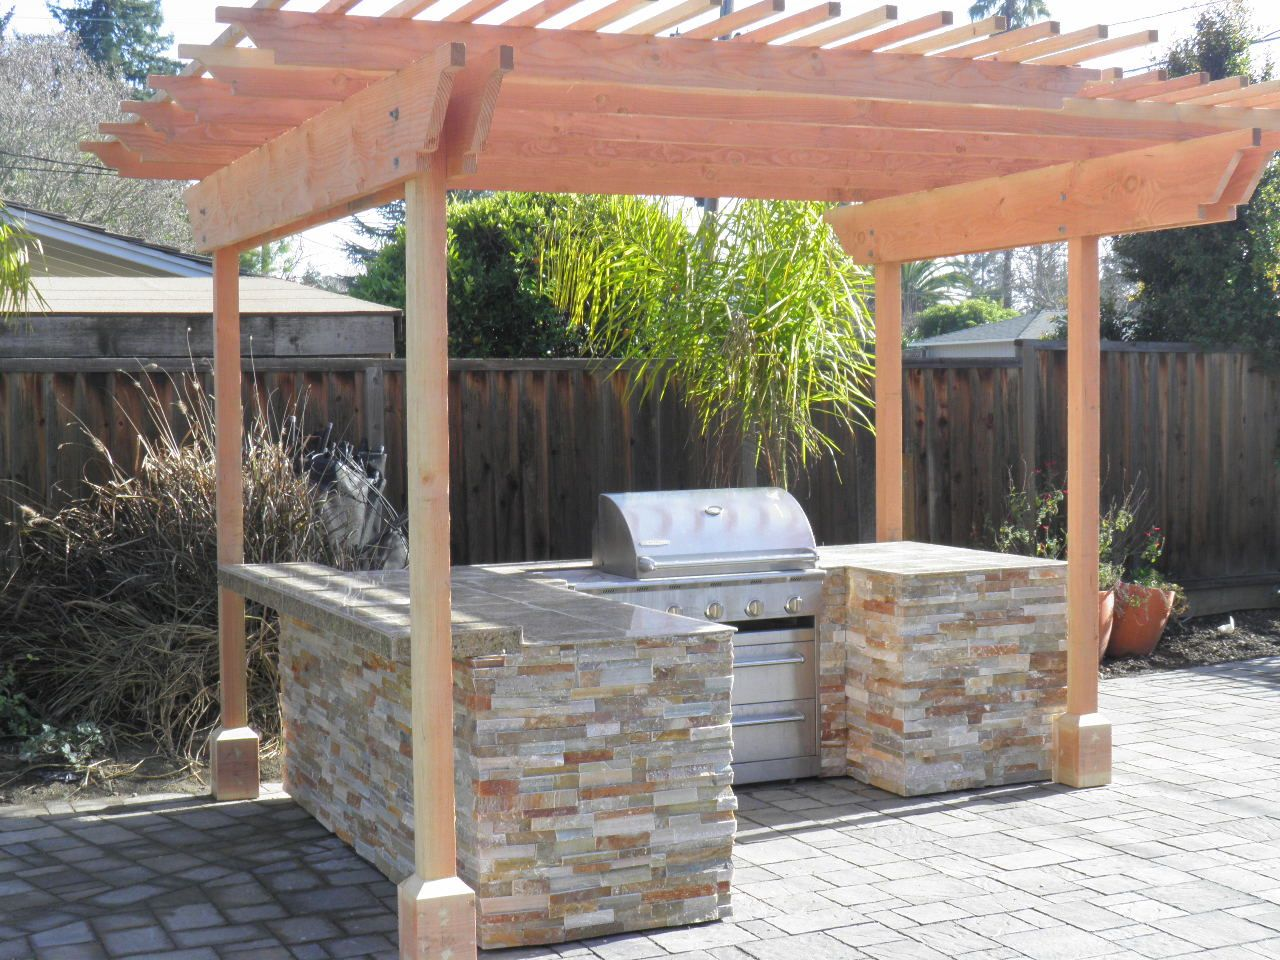 Outdoor Kitchen Roof Image Detail For Kitchen Island Build In Bbq Grill Build To Suit